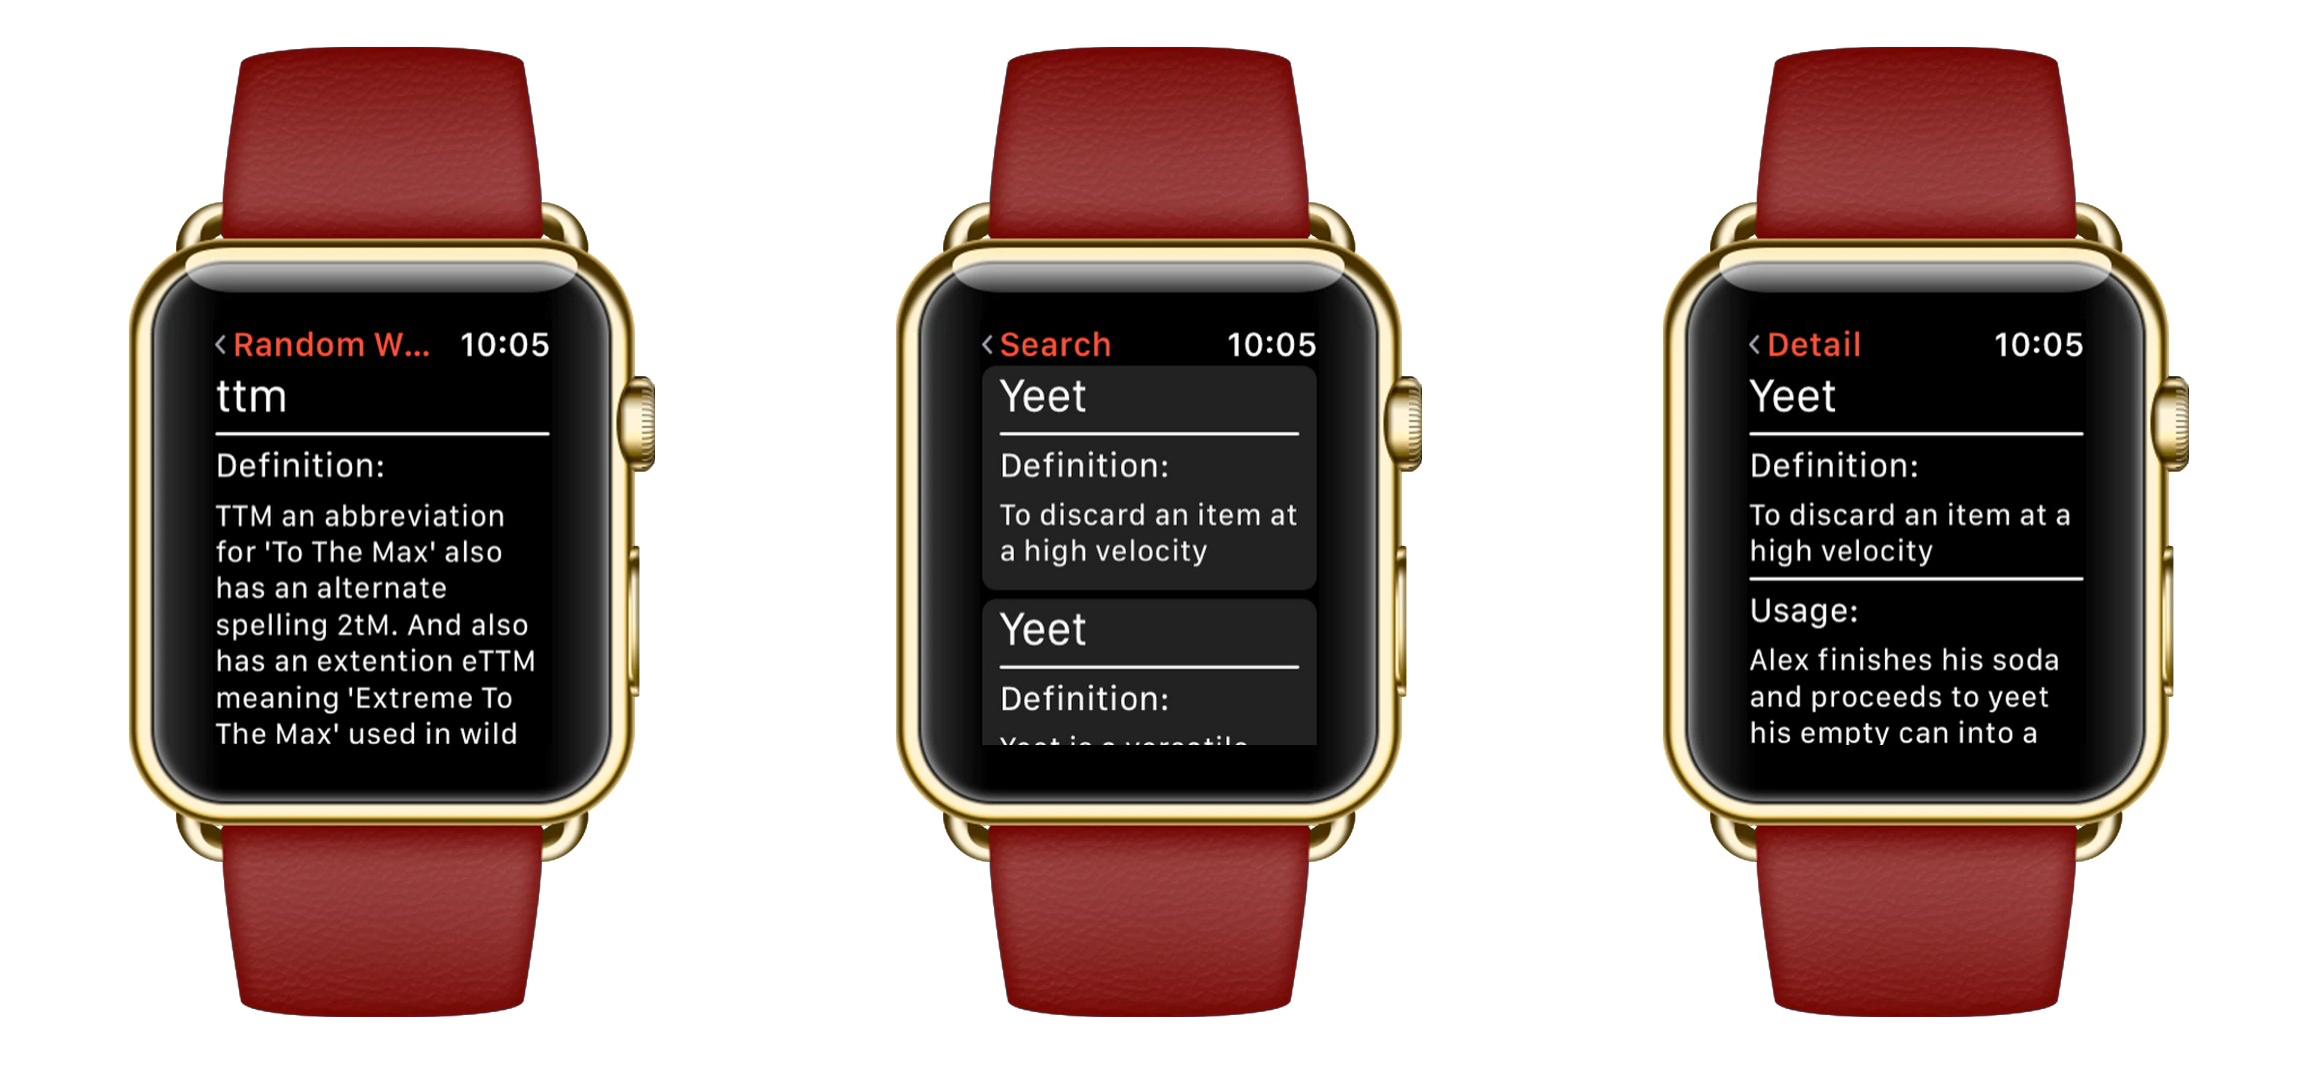 UrbanWatch for Apple Watch Brings the Urban Dictionary to Your Wrist